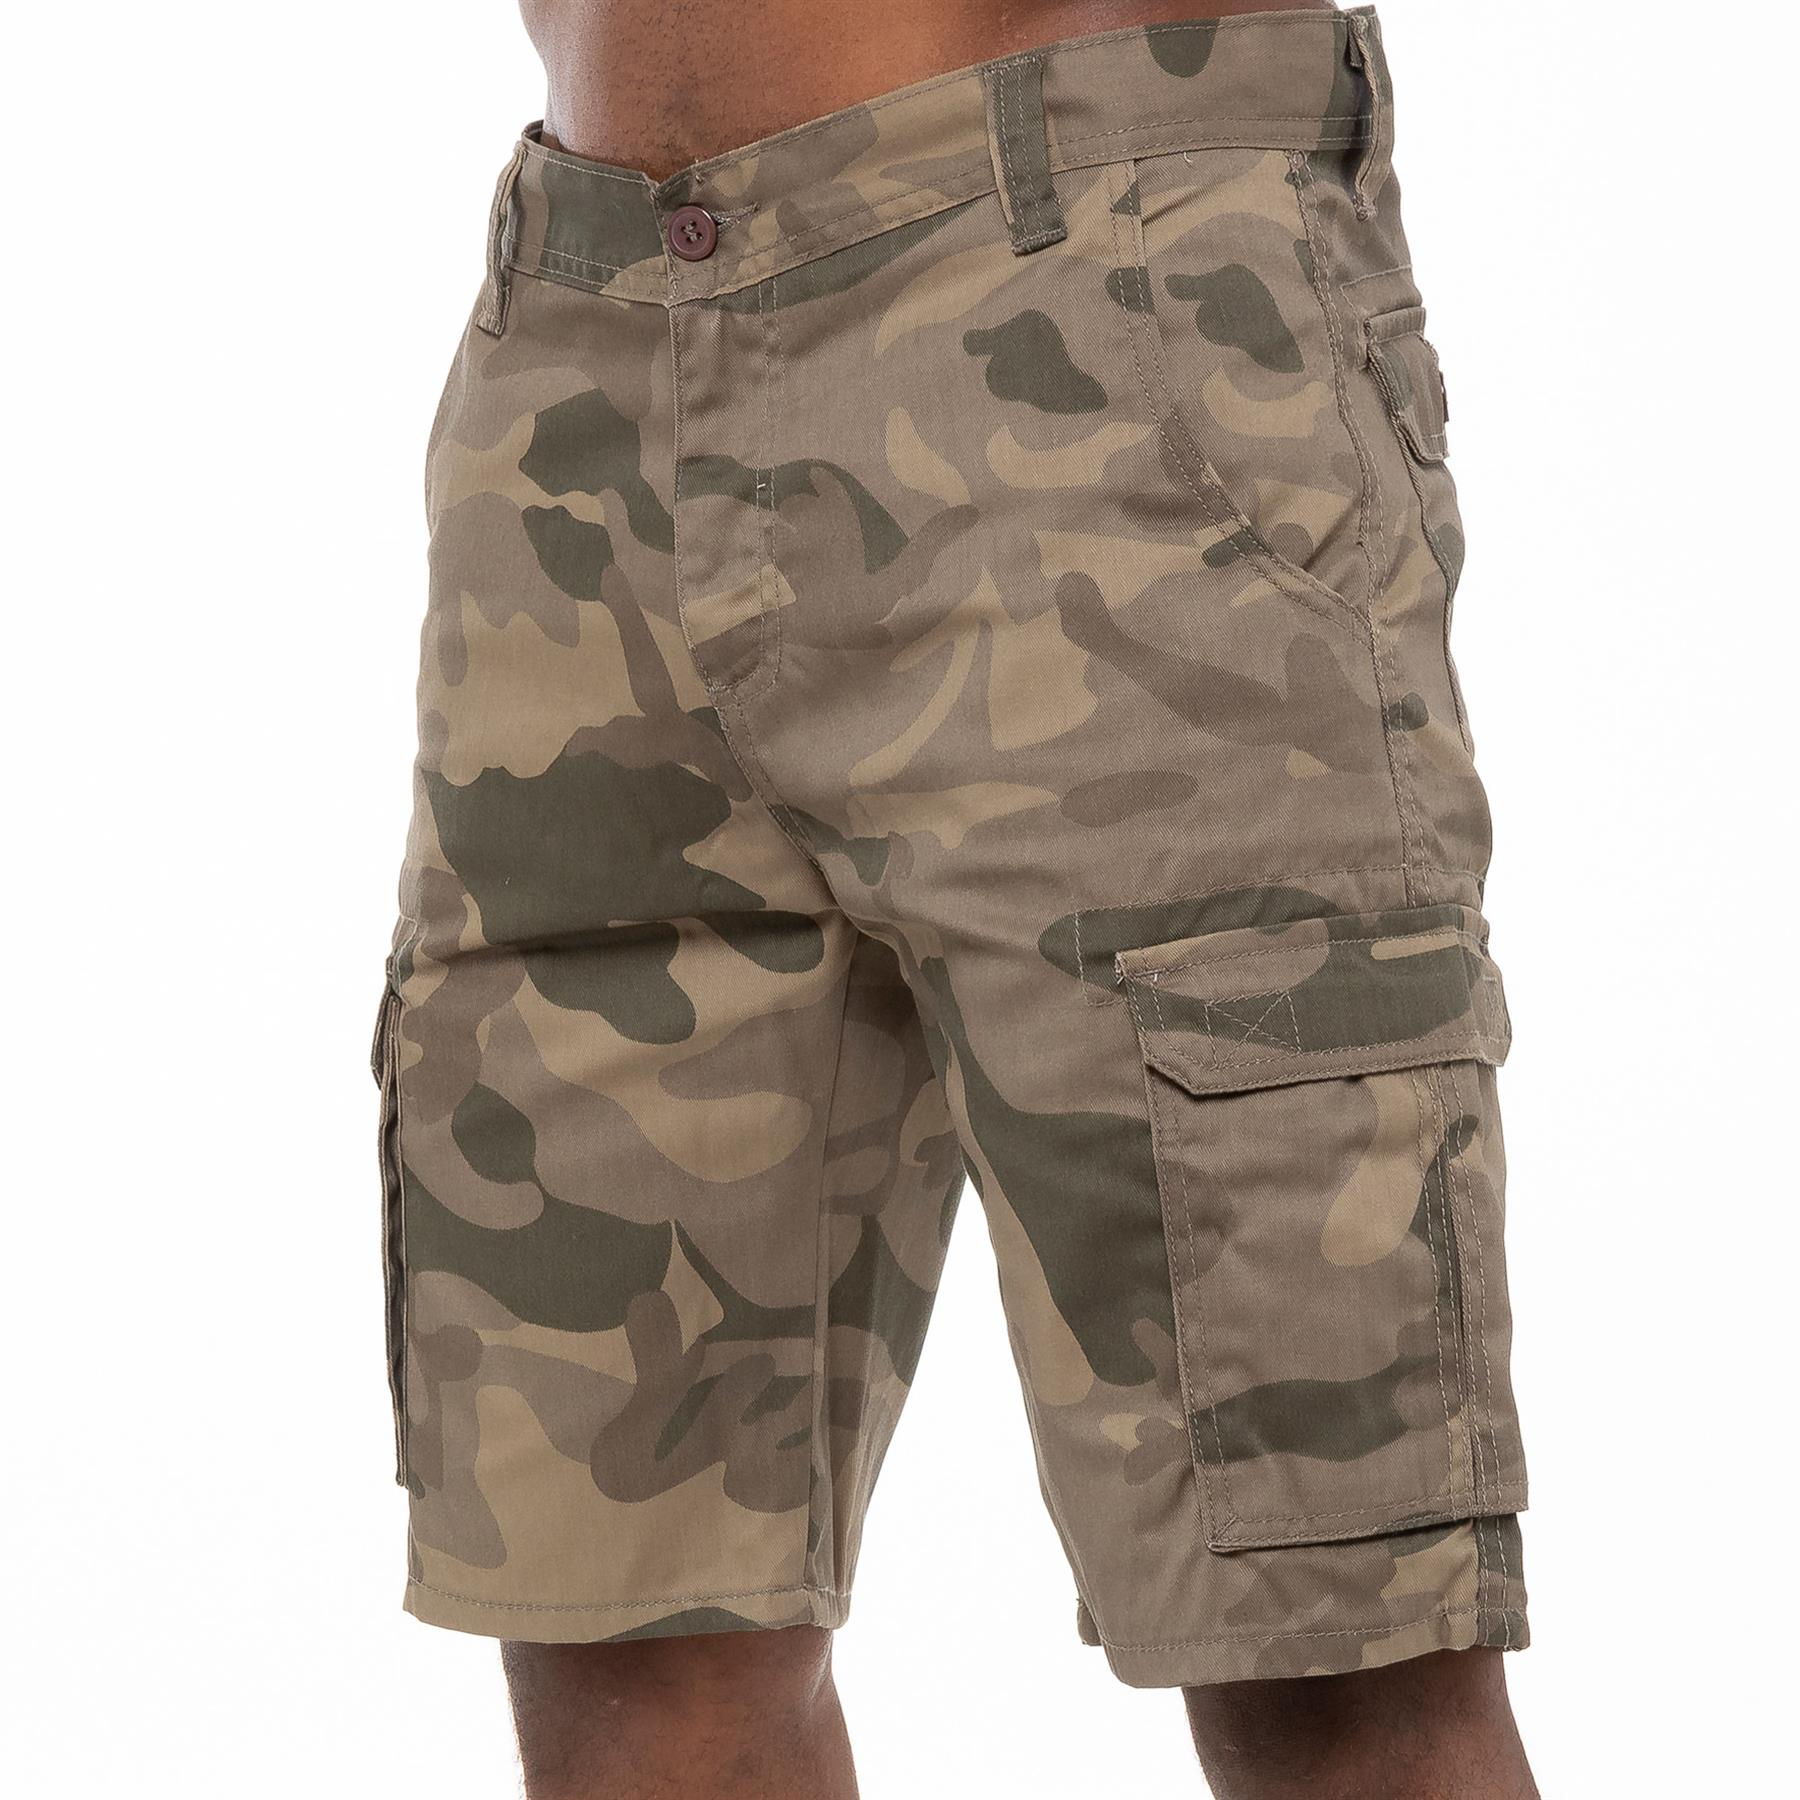 thumbnail 26 - Kruze Jeans Mens Army Combat Shorts Camouflage Cargo Casual Camo Work Half Pants